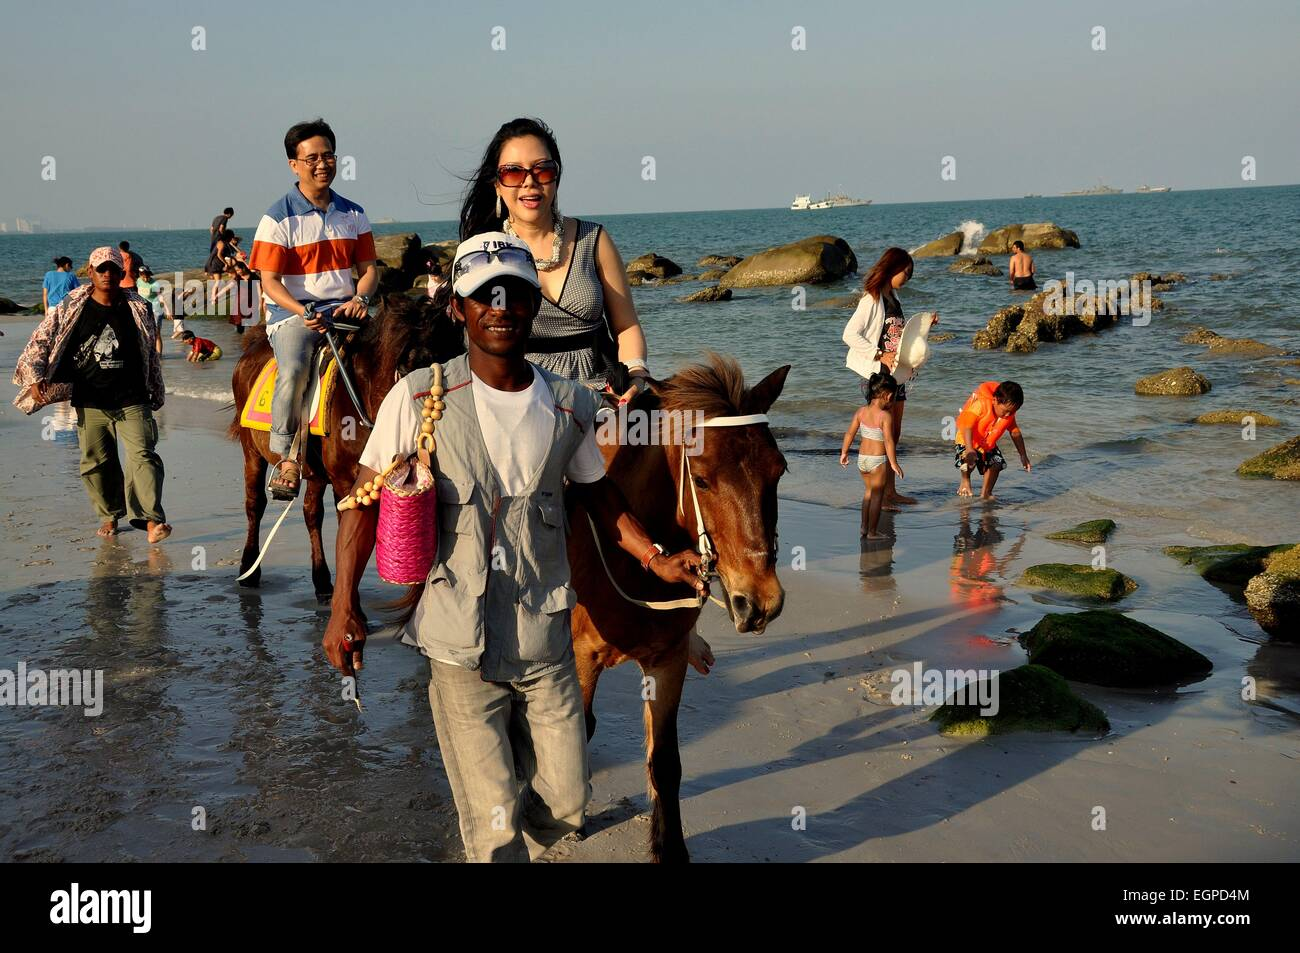 Hua Hin, Thailand: Handler escorts two Asian tourists riding rented horses  along the edge